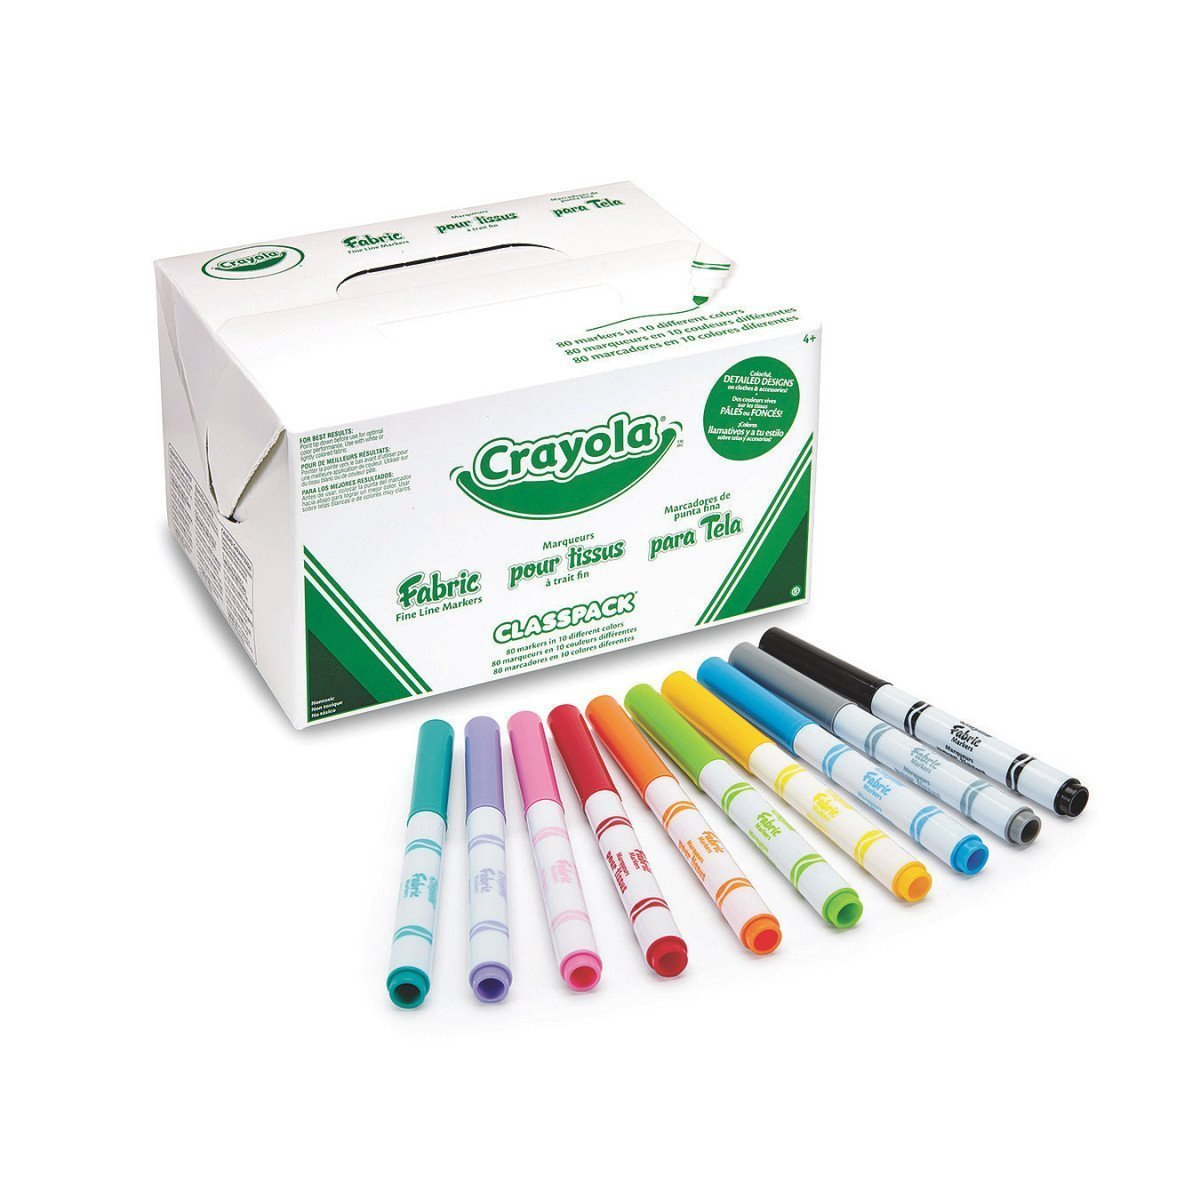 Crayola Bulk Pack 80-Count Fabric Markers Classpack, 10 Colors